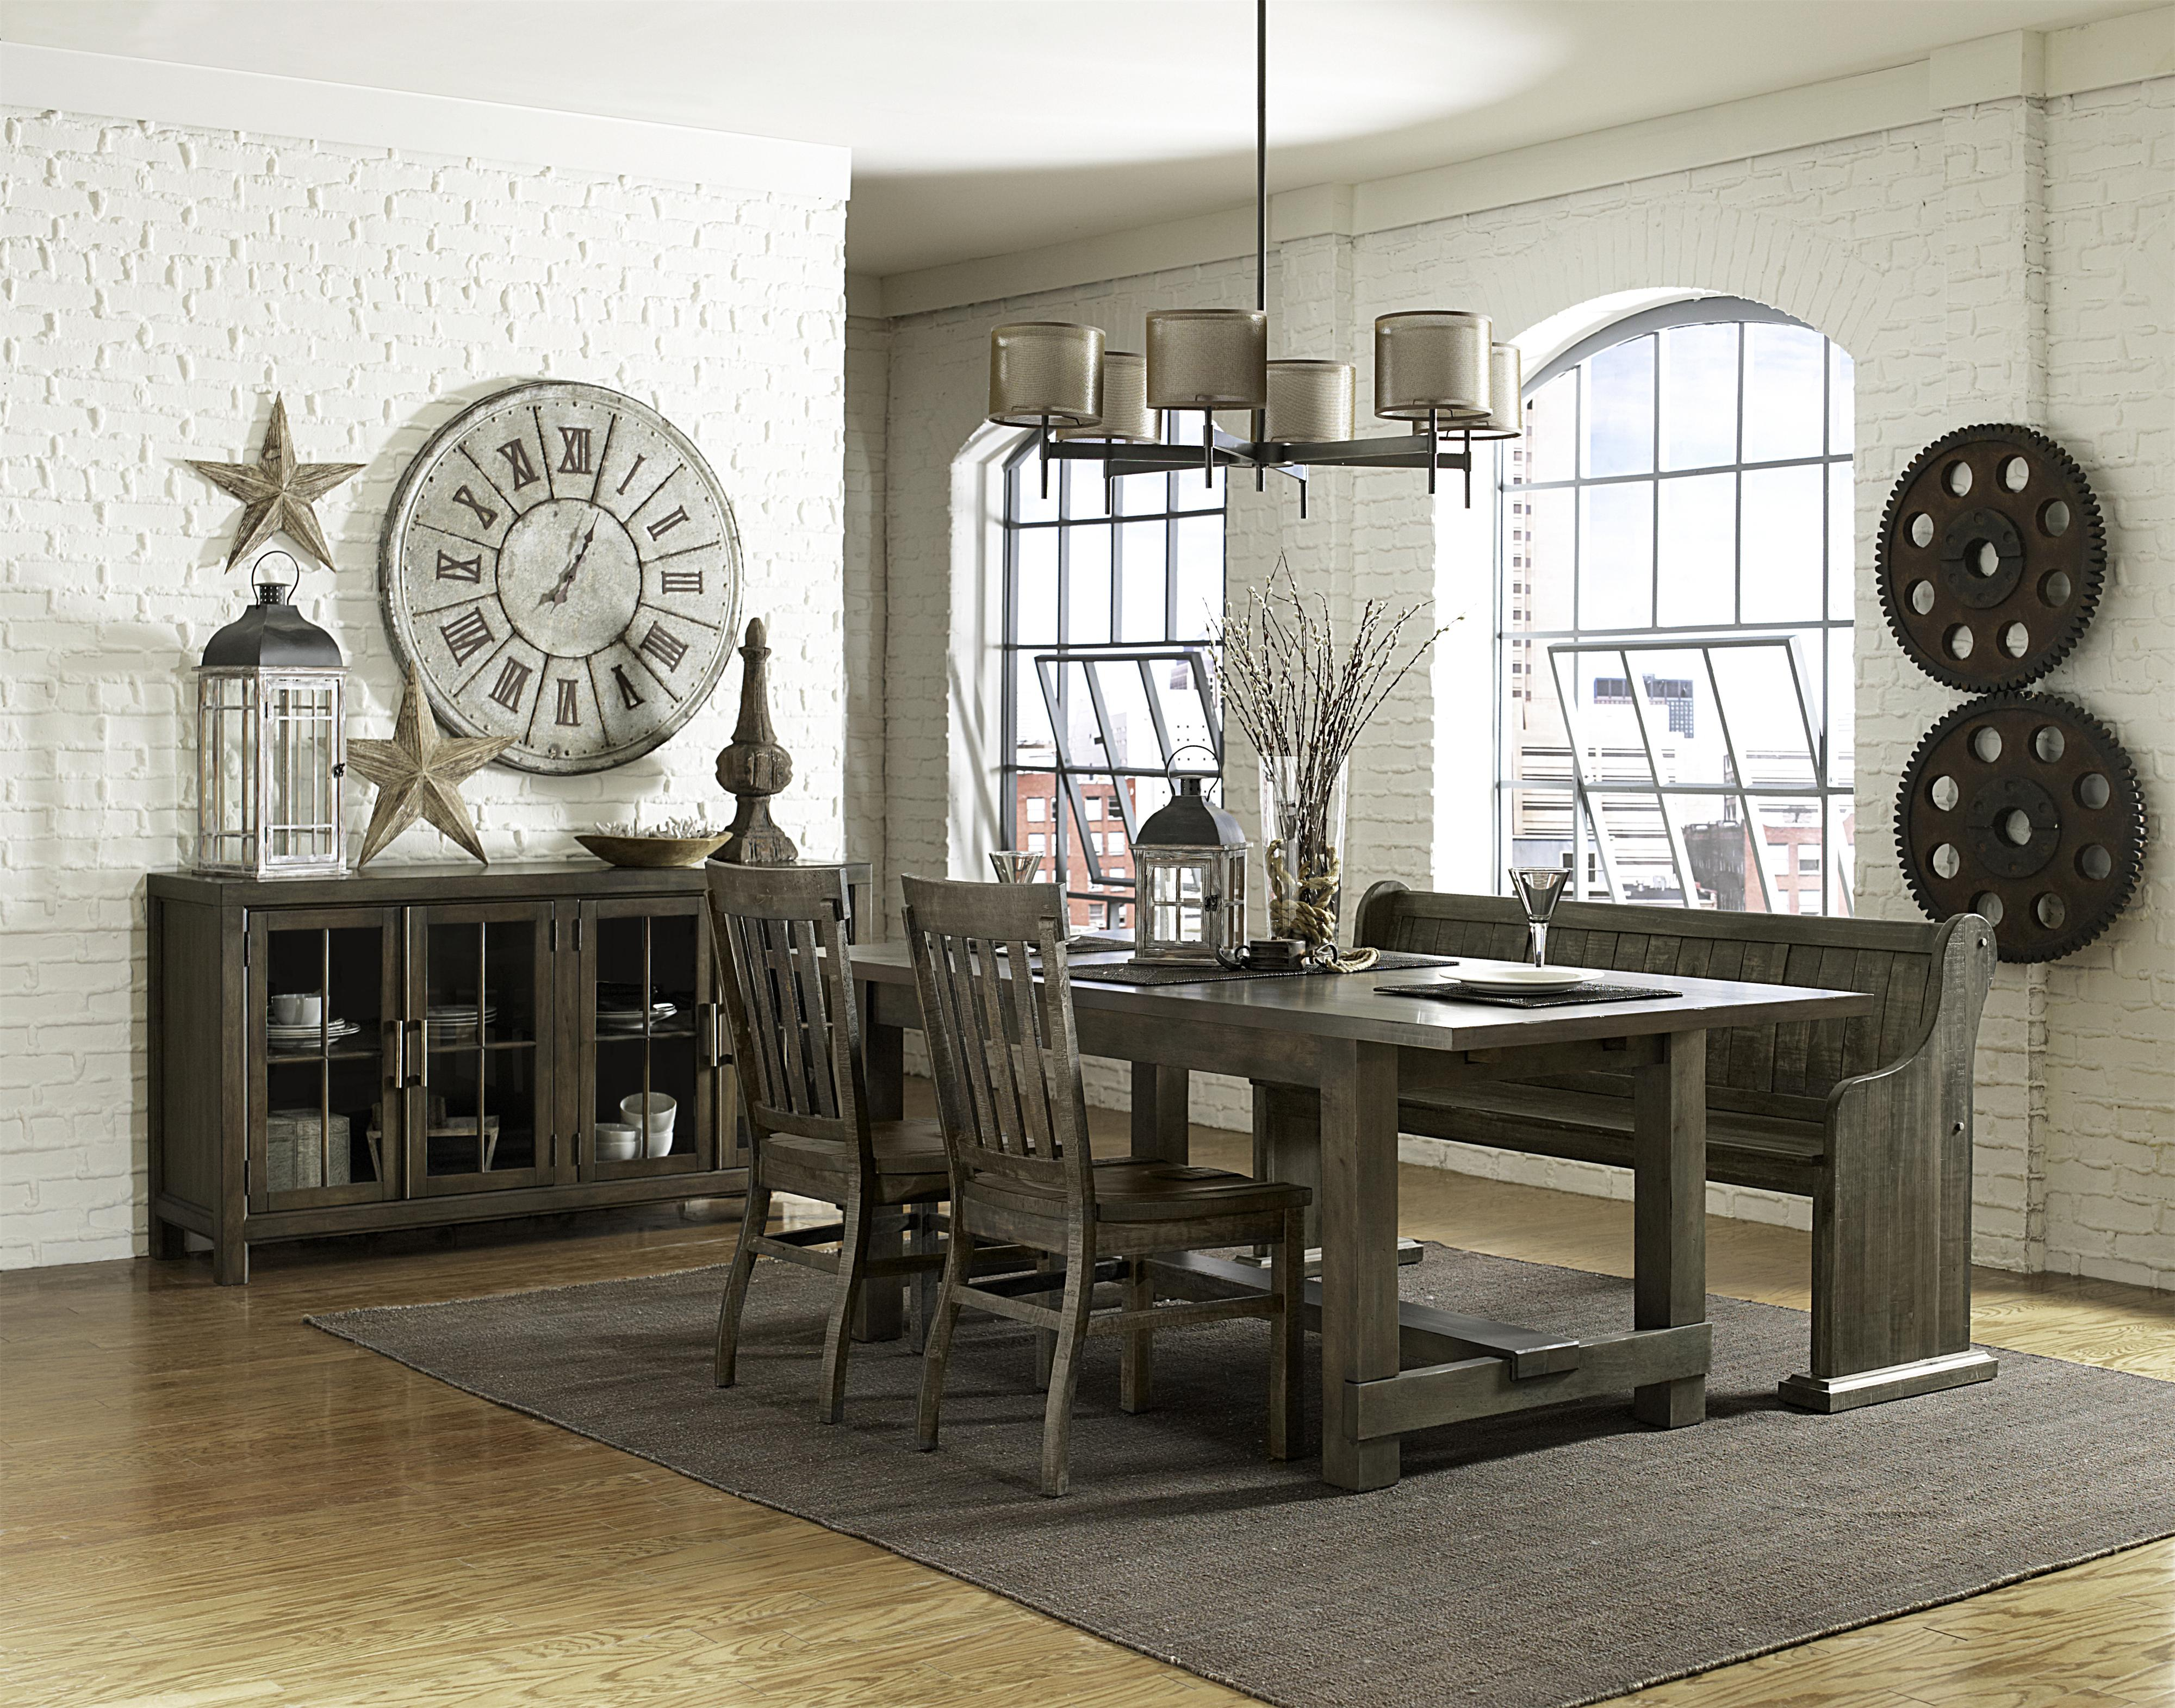 Magnussen Home Karlin Casual Dining Room Group - Item Number: D2471 Dining Room Group 4